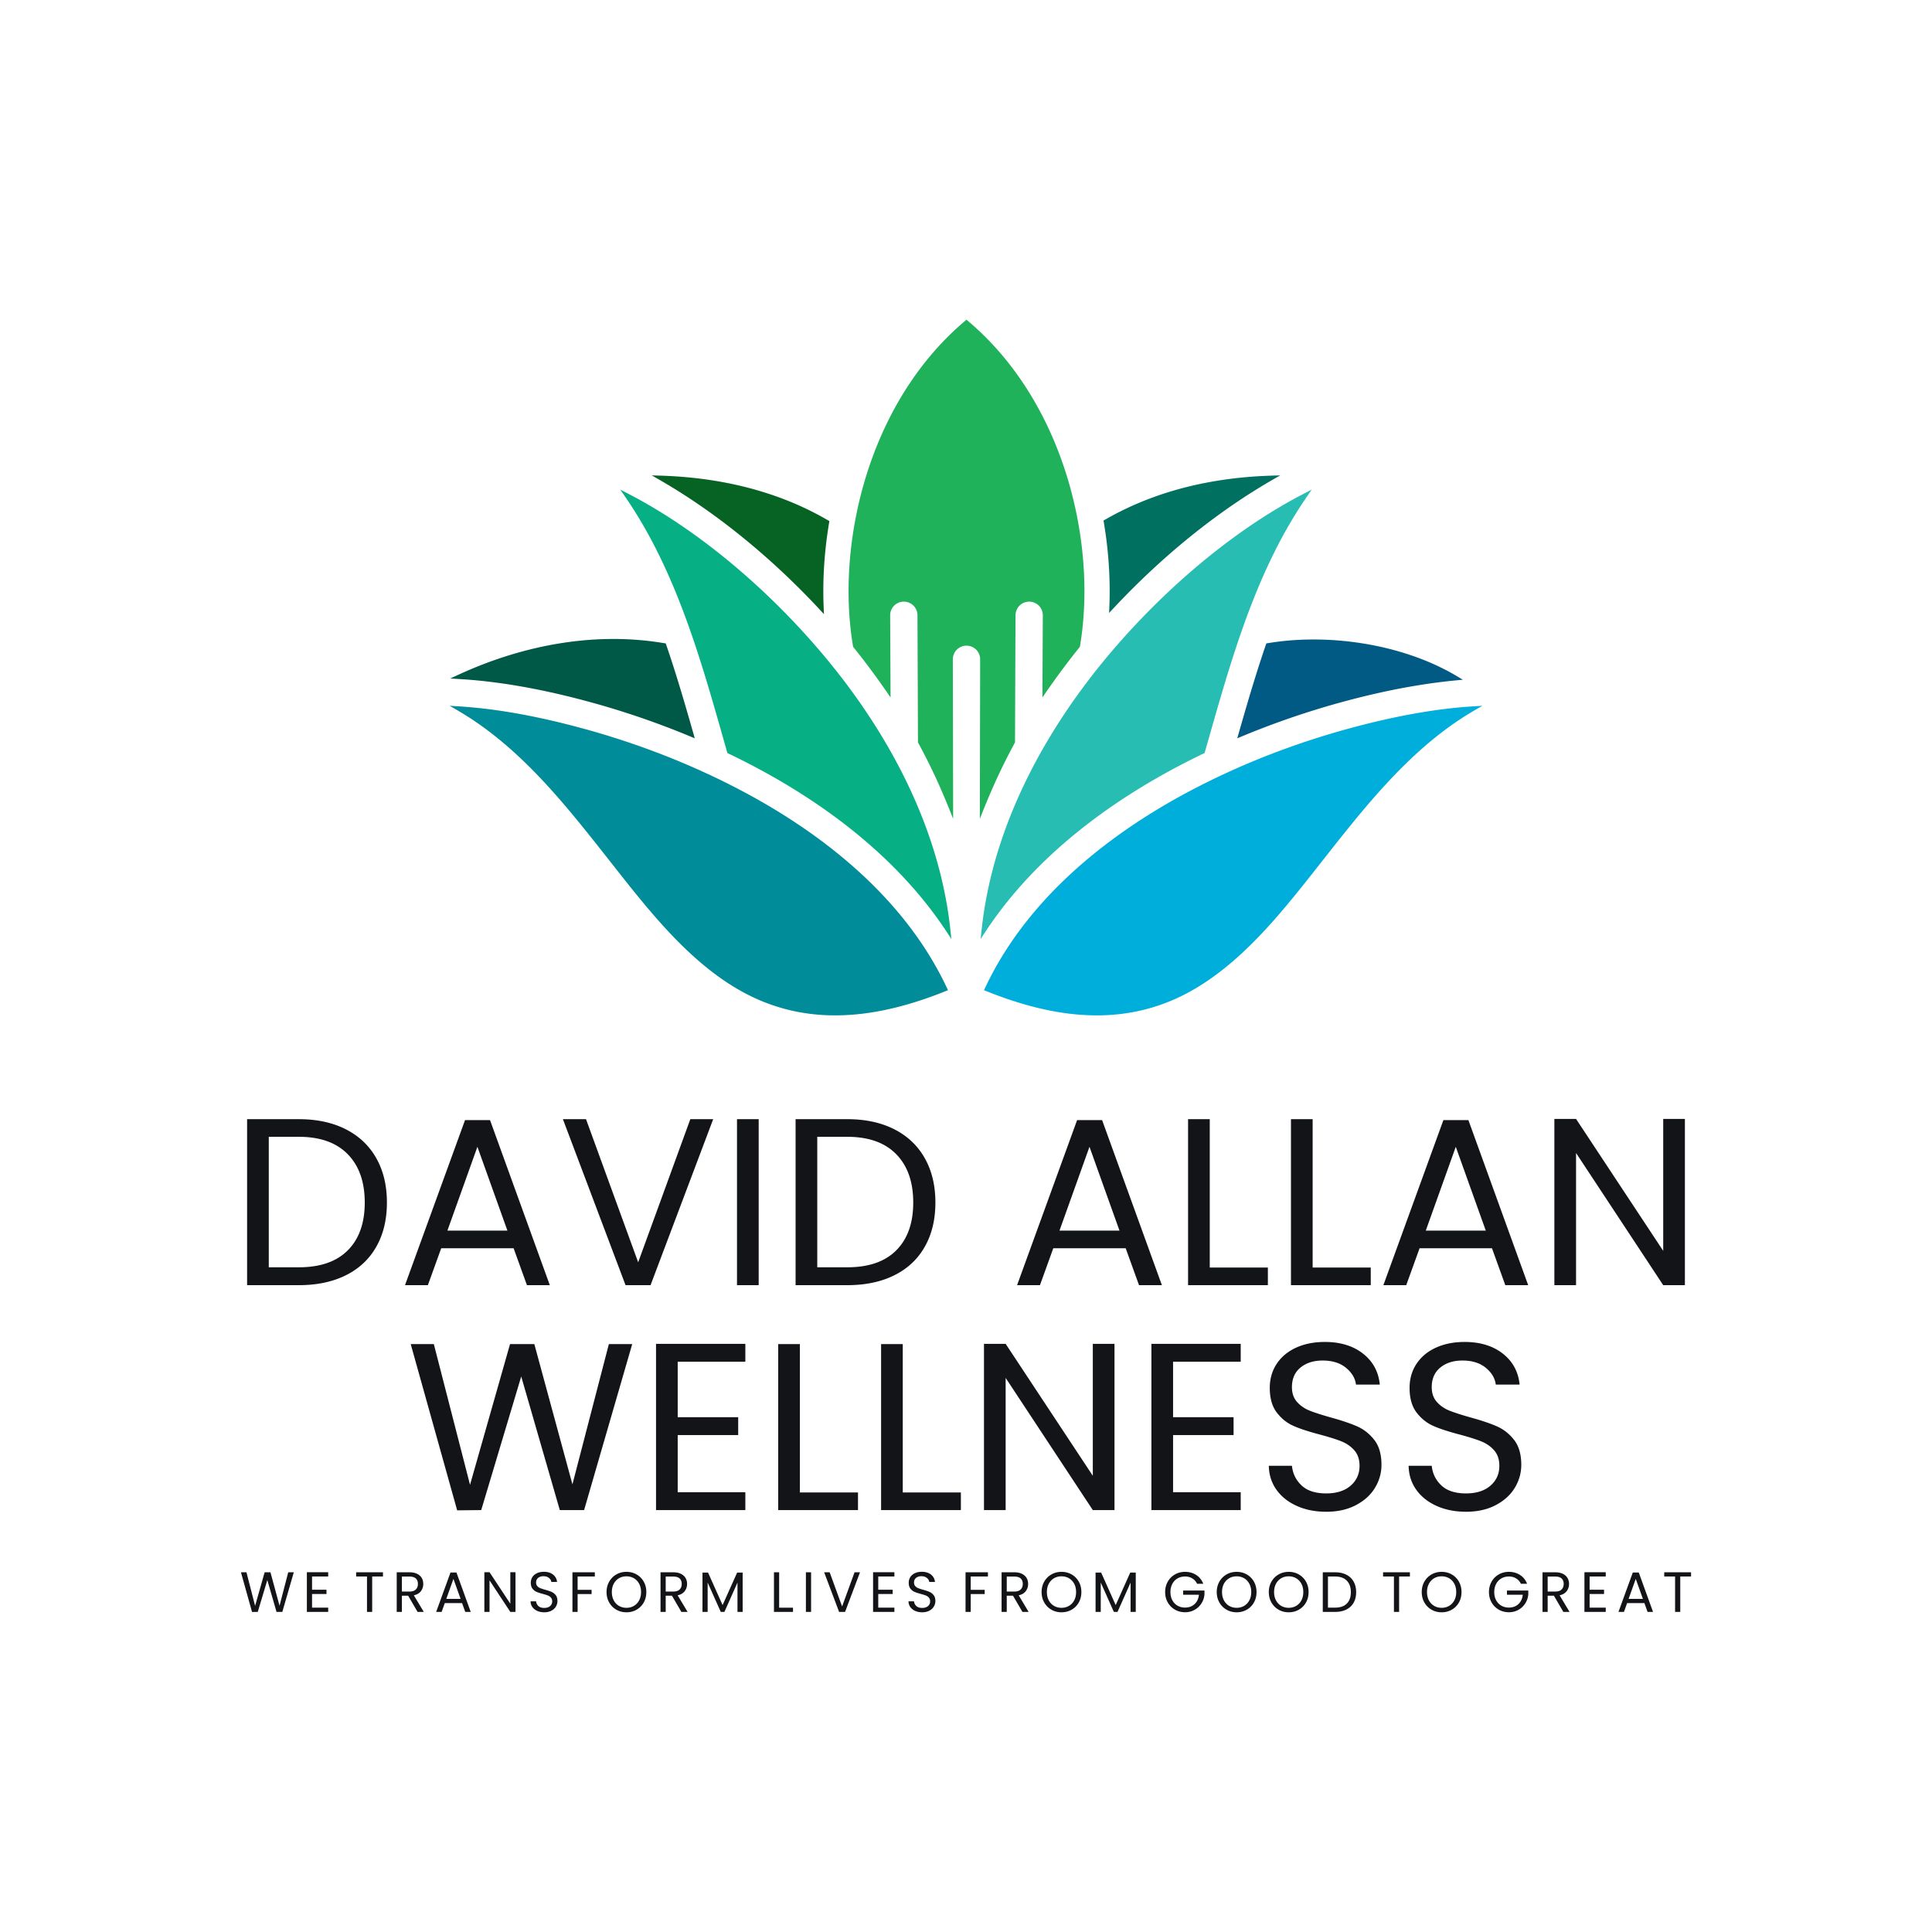 I've been a wellness doctor for close to 40 years. We transform lives from good to great. Integrity. Experience. Results